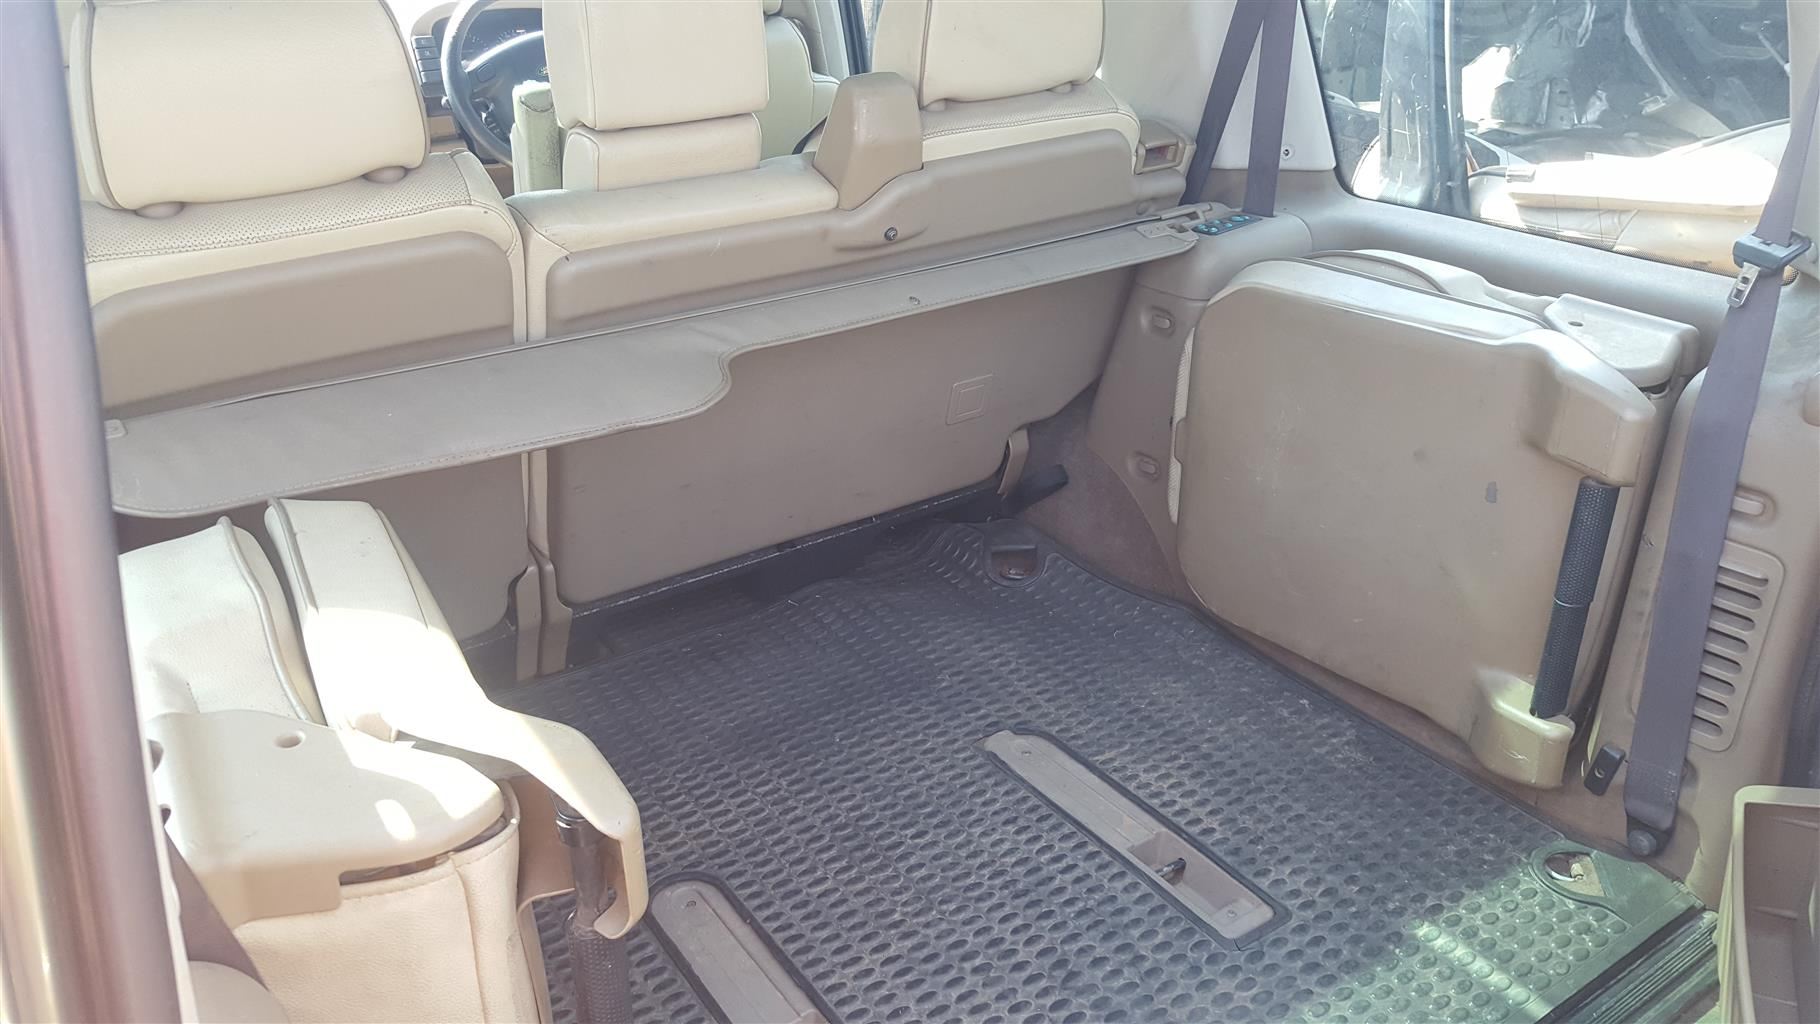 Land Rover Discovery 2 TD5 Parcel tray cover | Auto Ezi